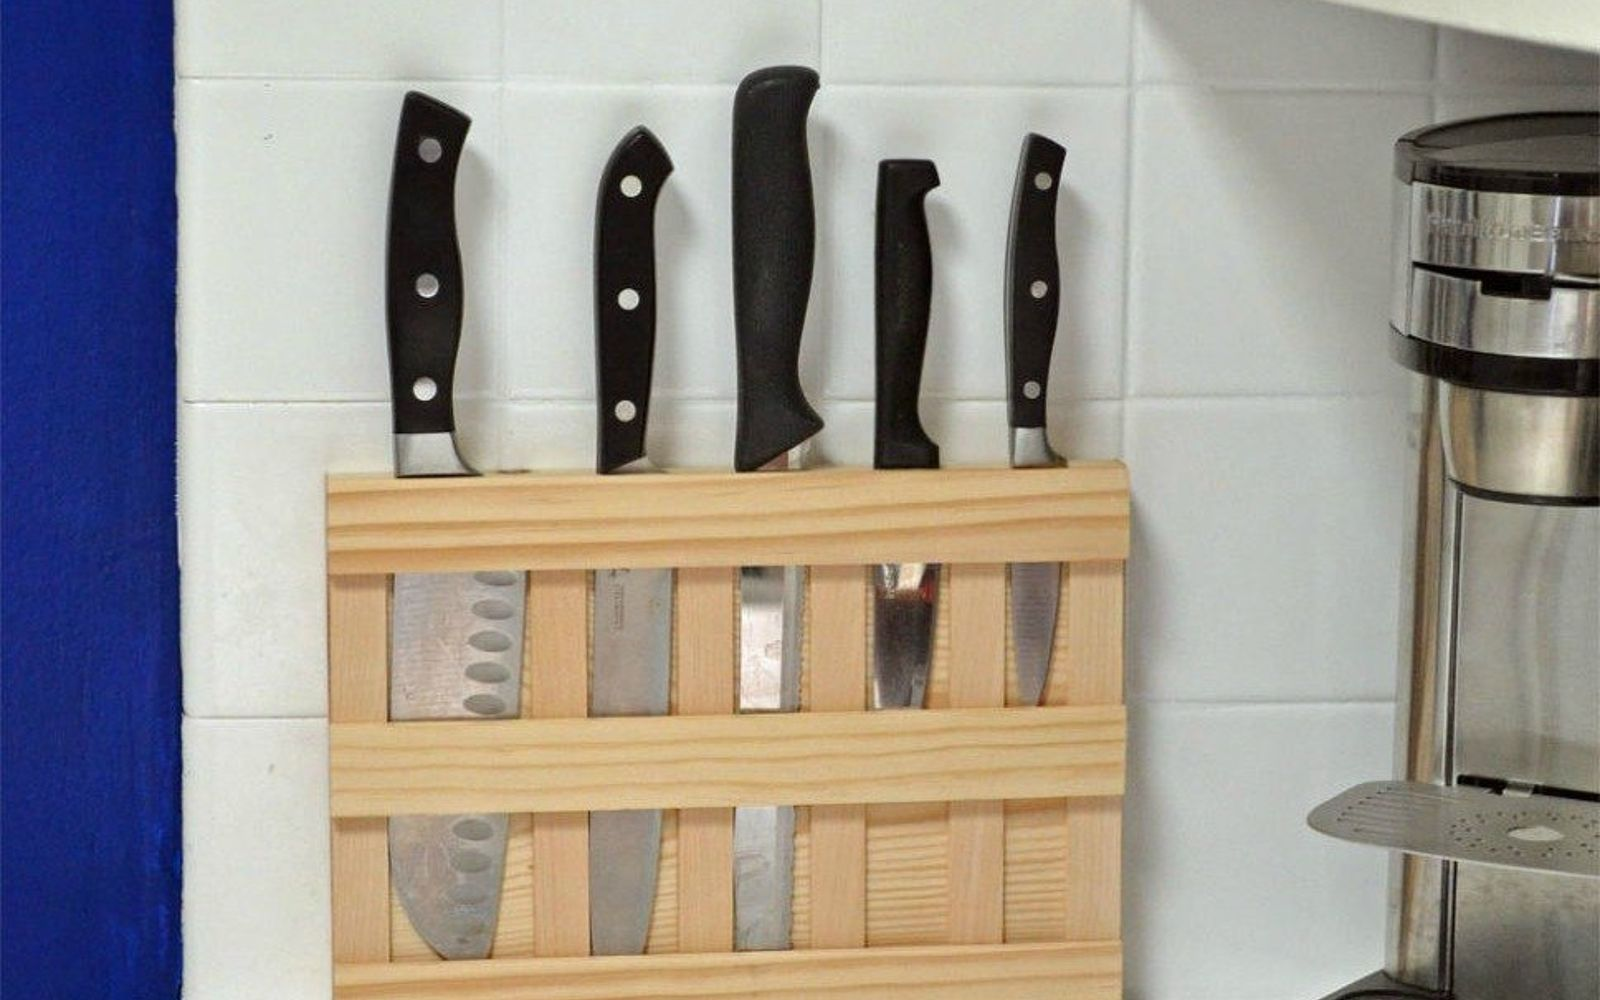 s 17 little known ways to use your wasted wall space, organizing, storage ideas, wall decor, Mount a knife rack near the counter